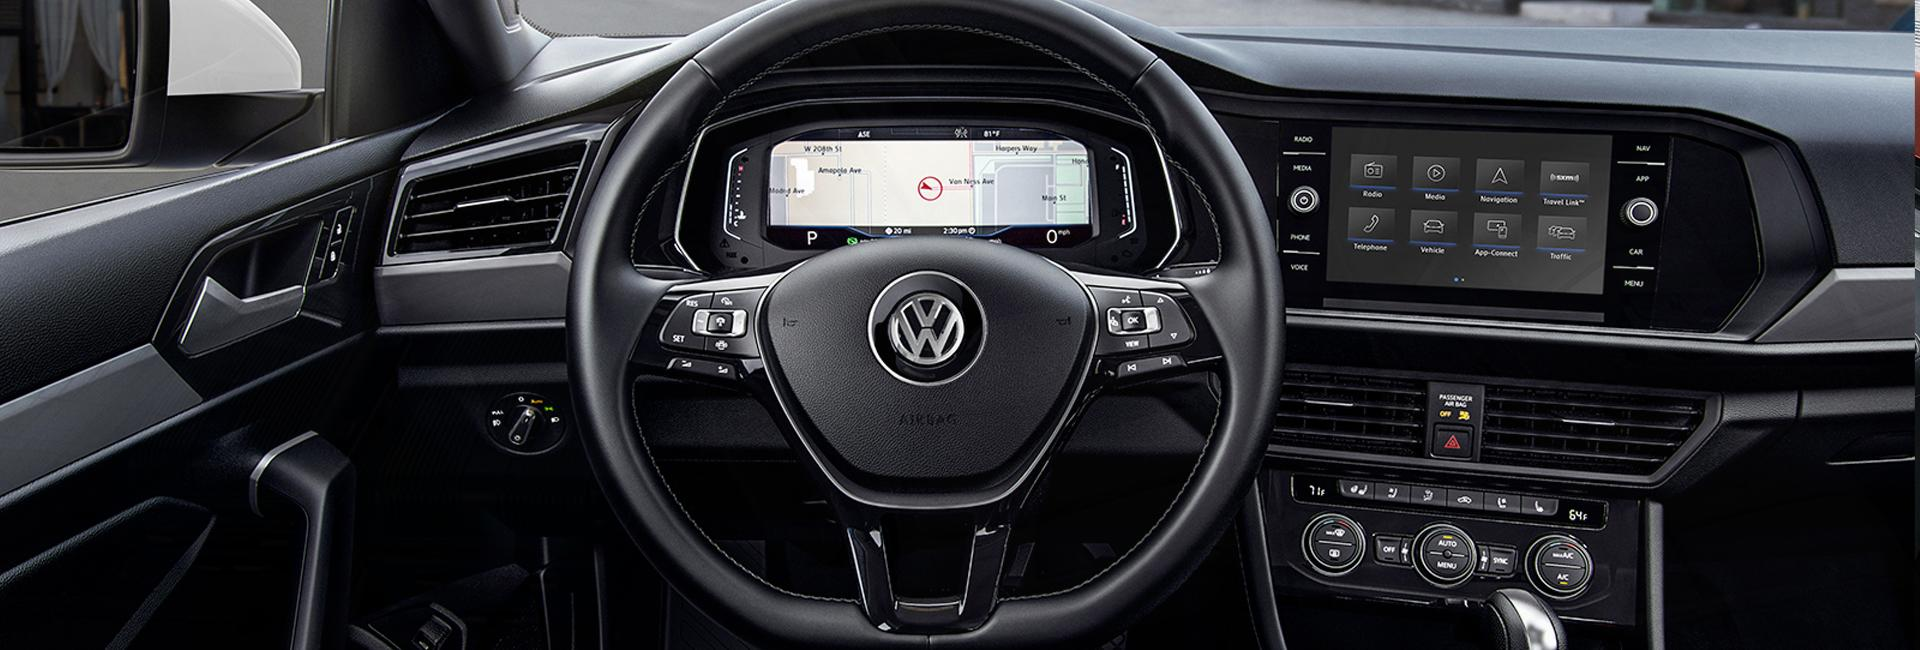 Steering wheel and infotainment view of the 2020 Jetta.